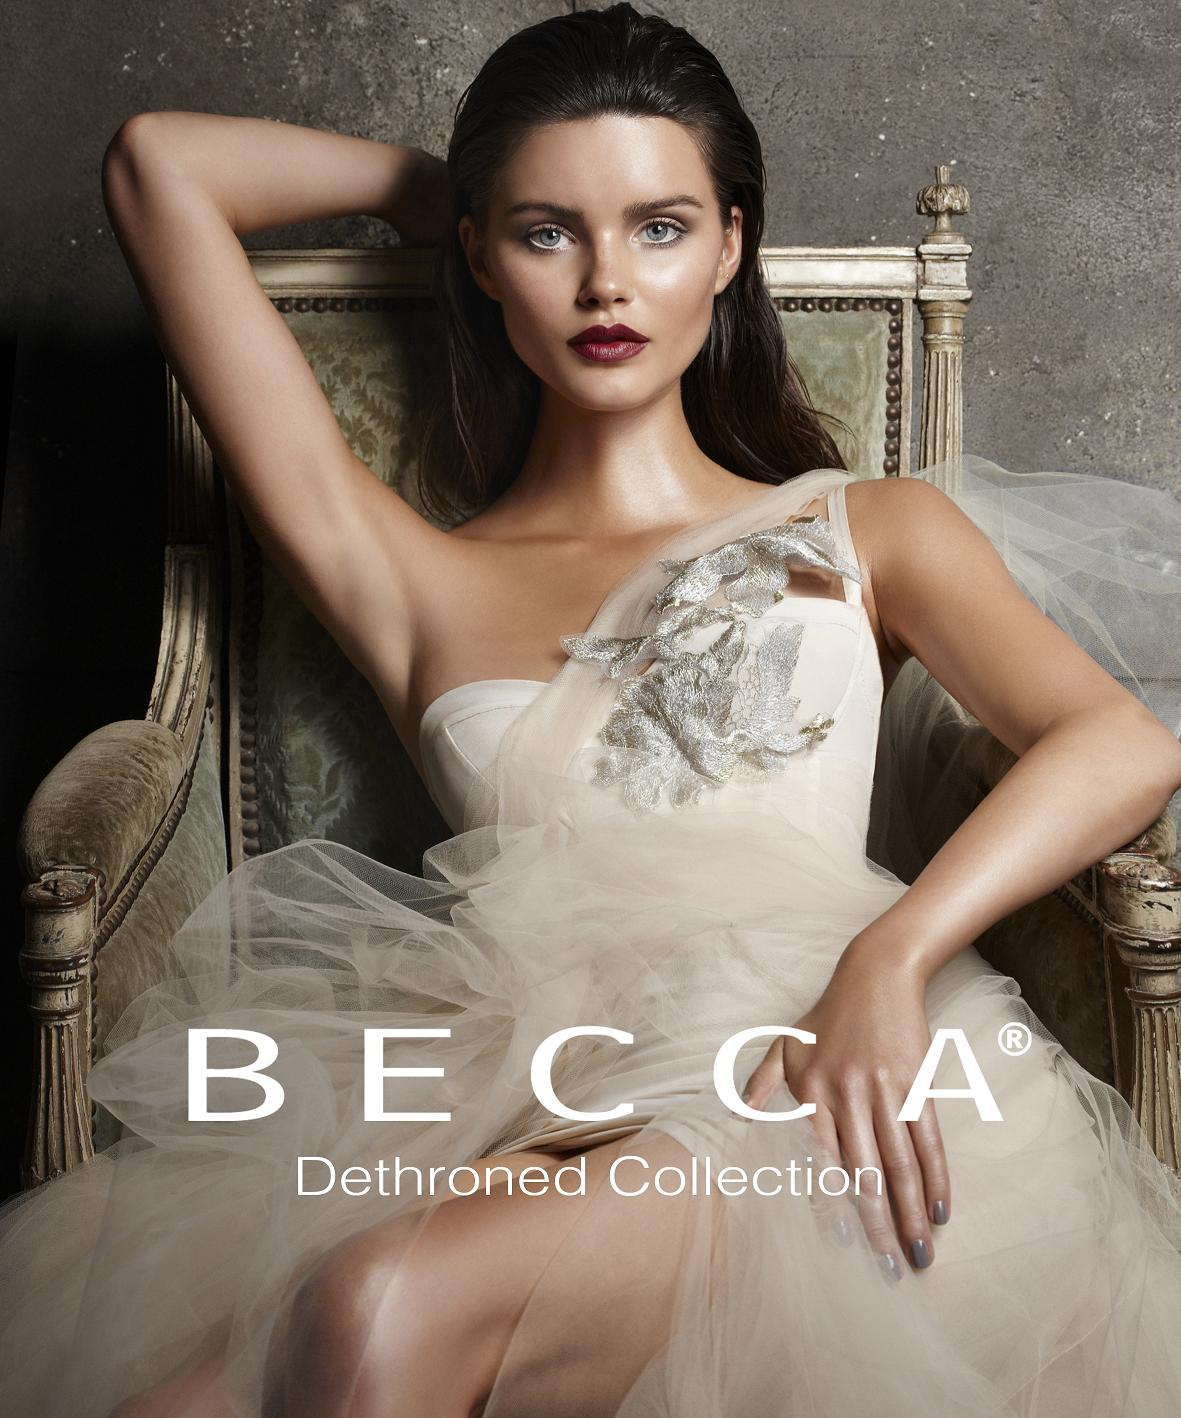 BECCA Dethroned Collection